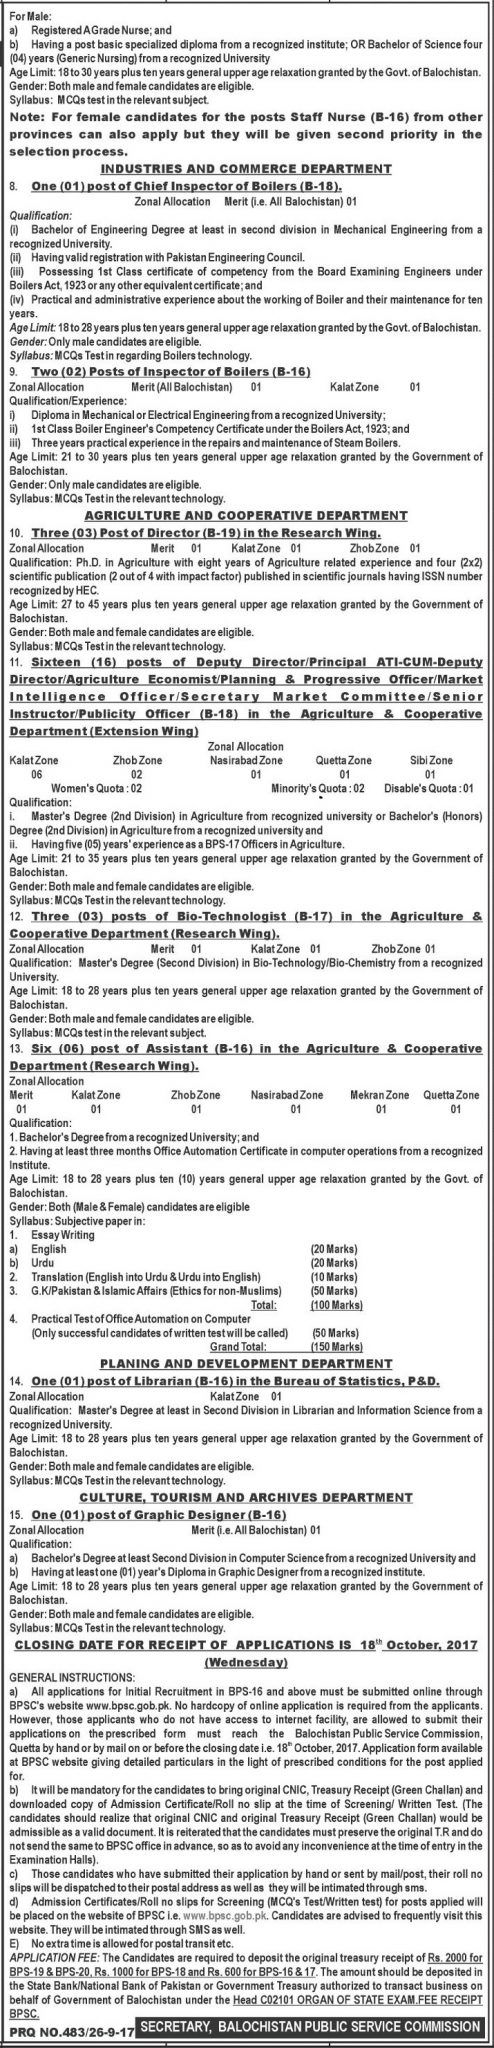 Balochistan public service commission jobs 2017 in quetta for professor lady medical officer and staff